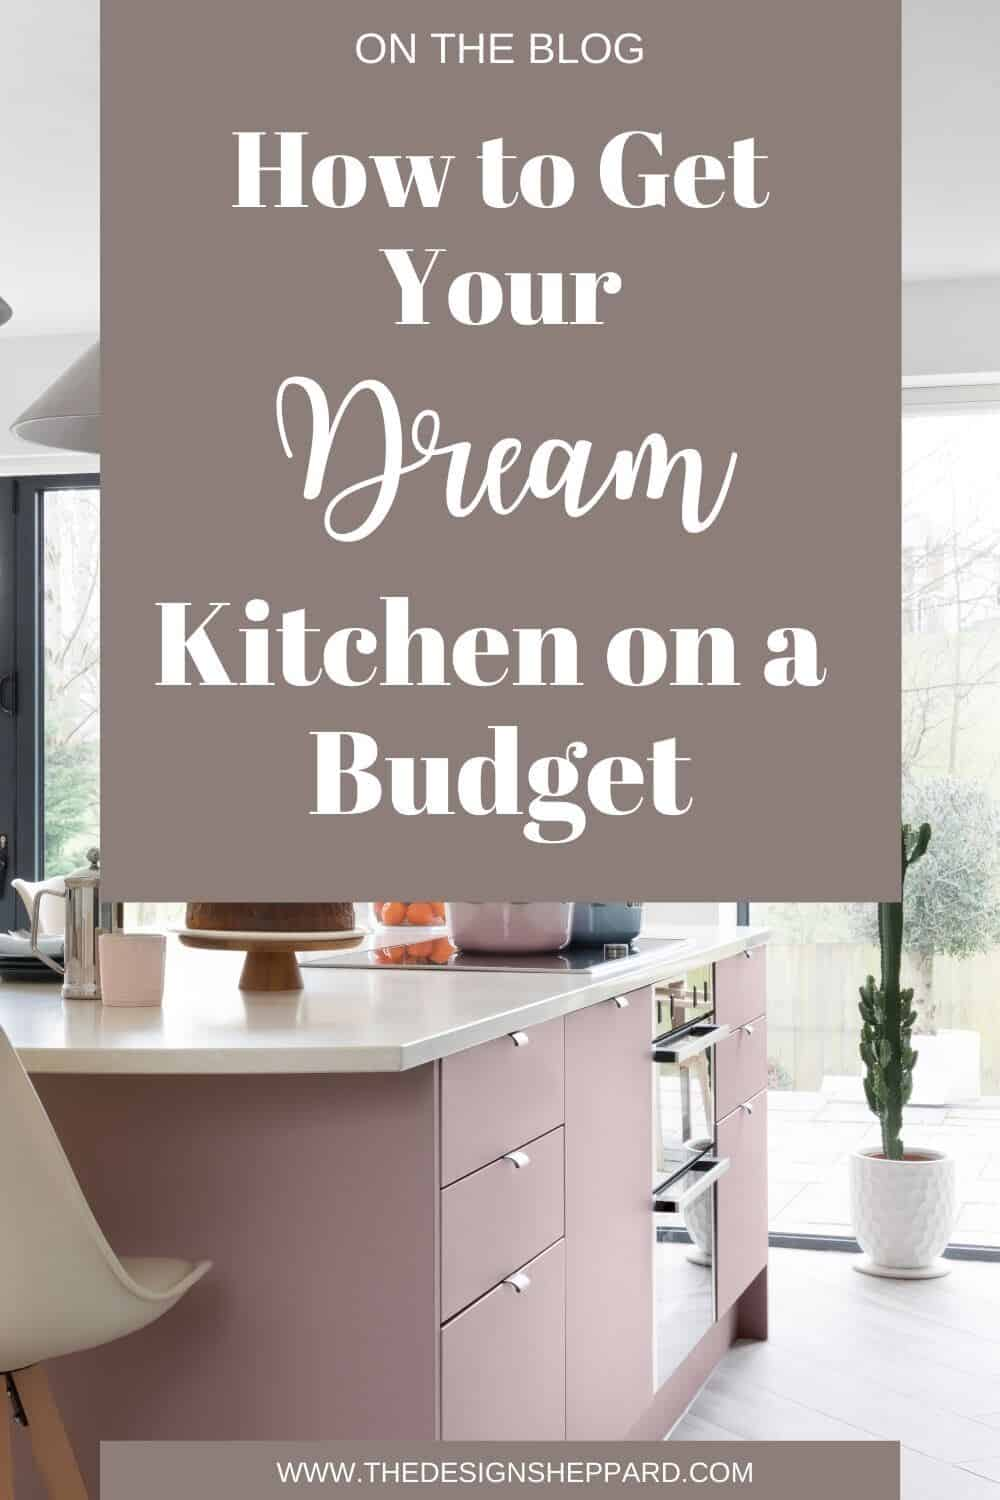 How to get your dream kitchen on a budget Pinterest pin